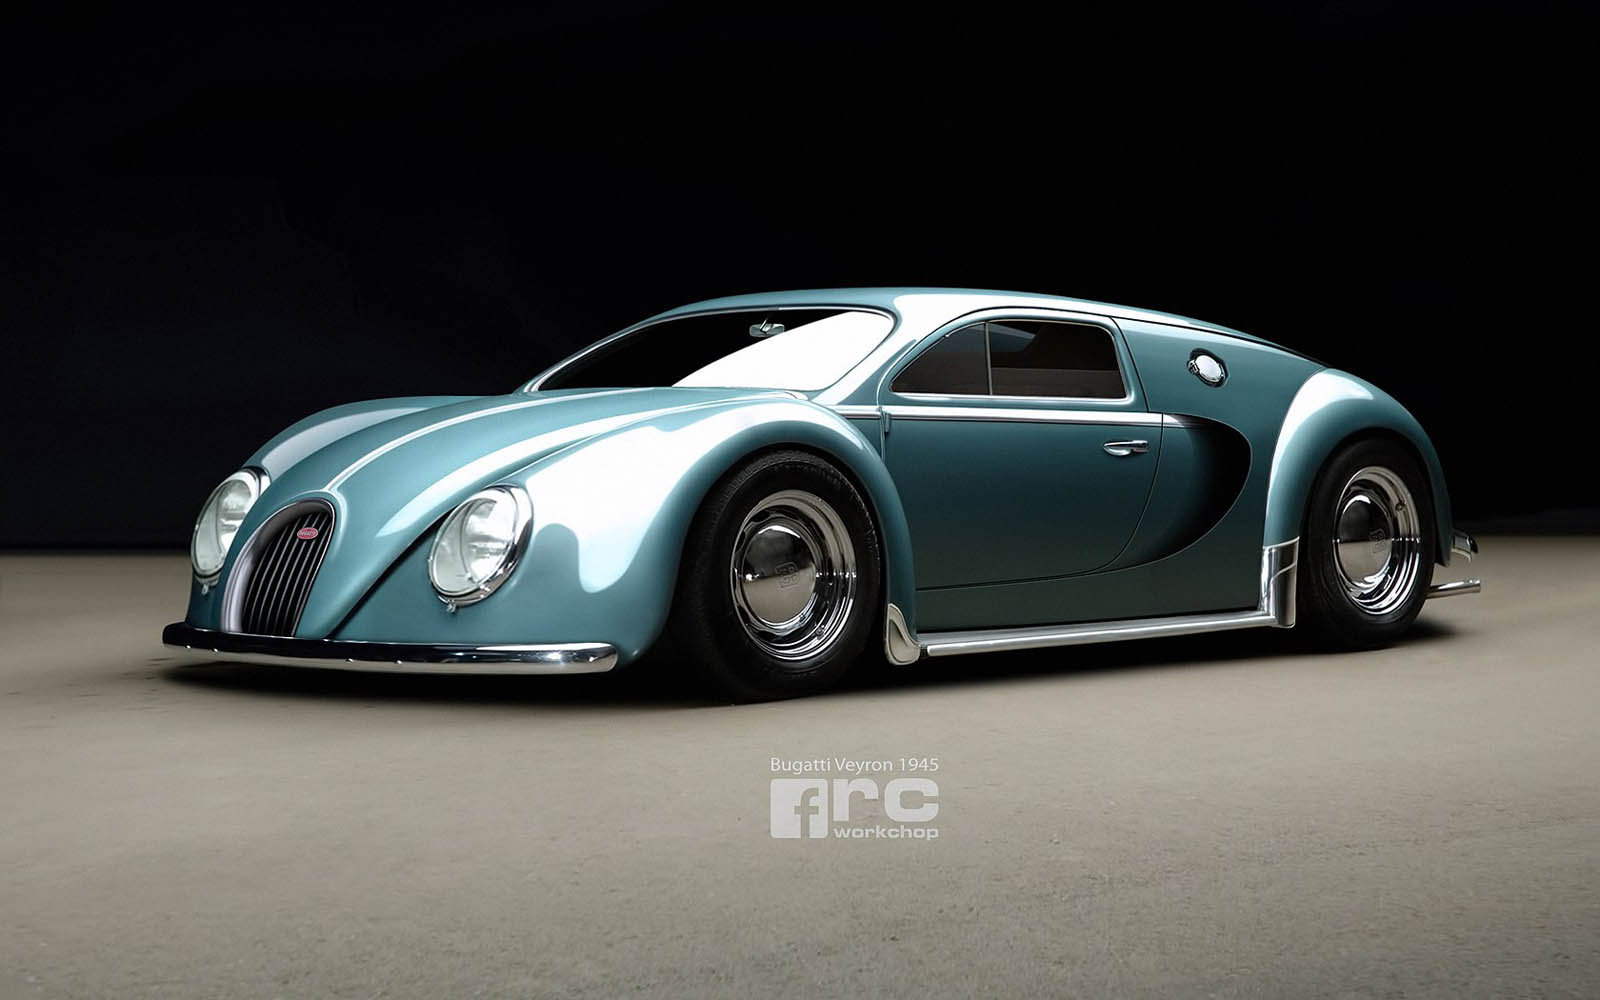 What If The Bugatti Veyron Had Been Made In 1945